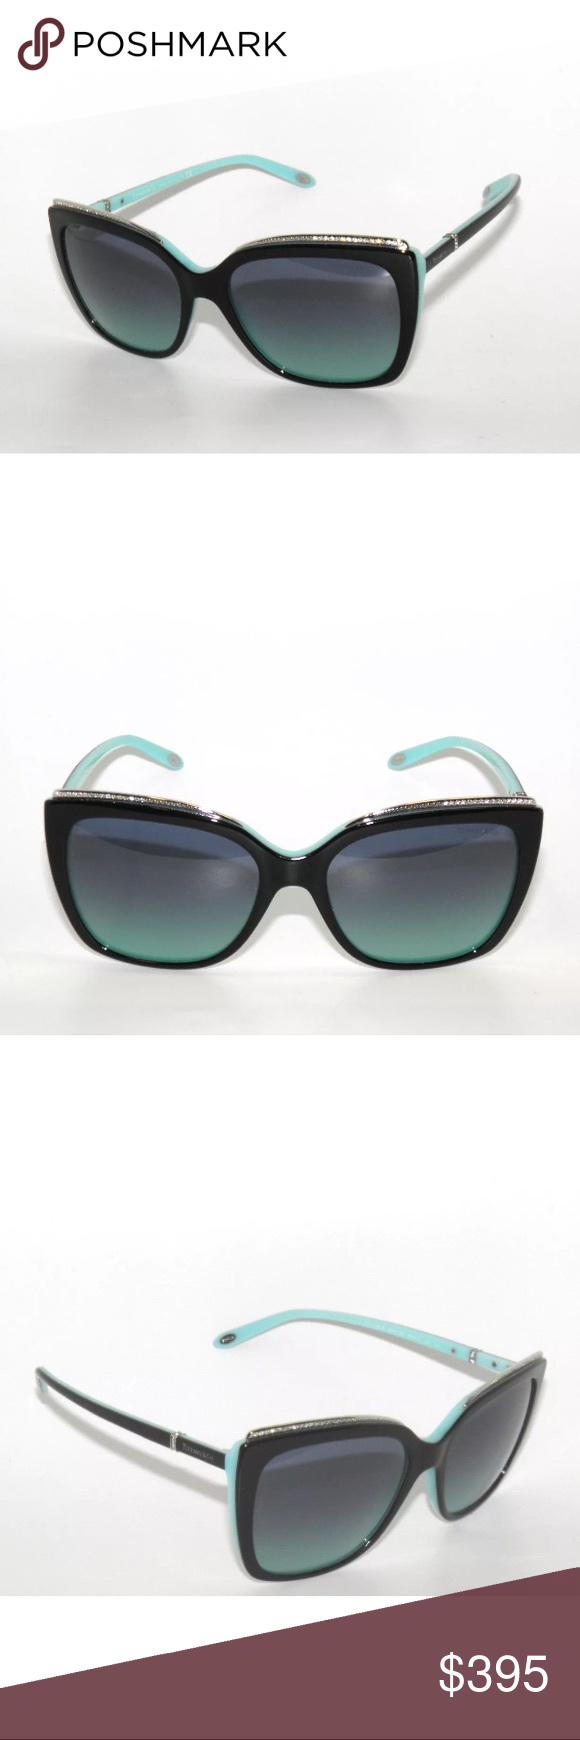 df939e4da9fd Tiffany   Co Sunglasses 4135 Black and blue Brand new Comes with authentic  Tiffany case